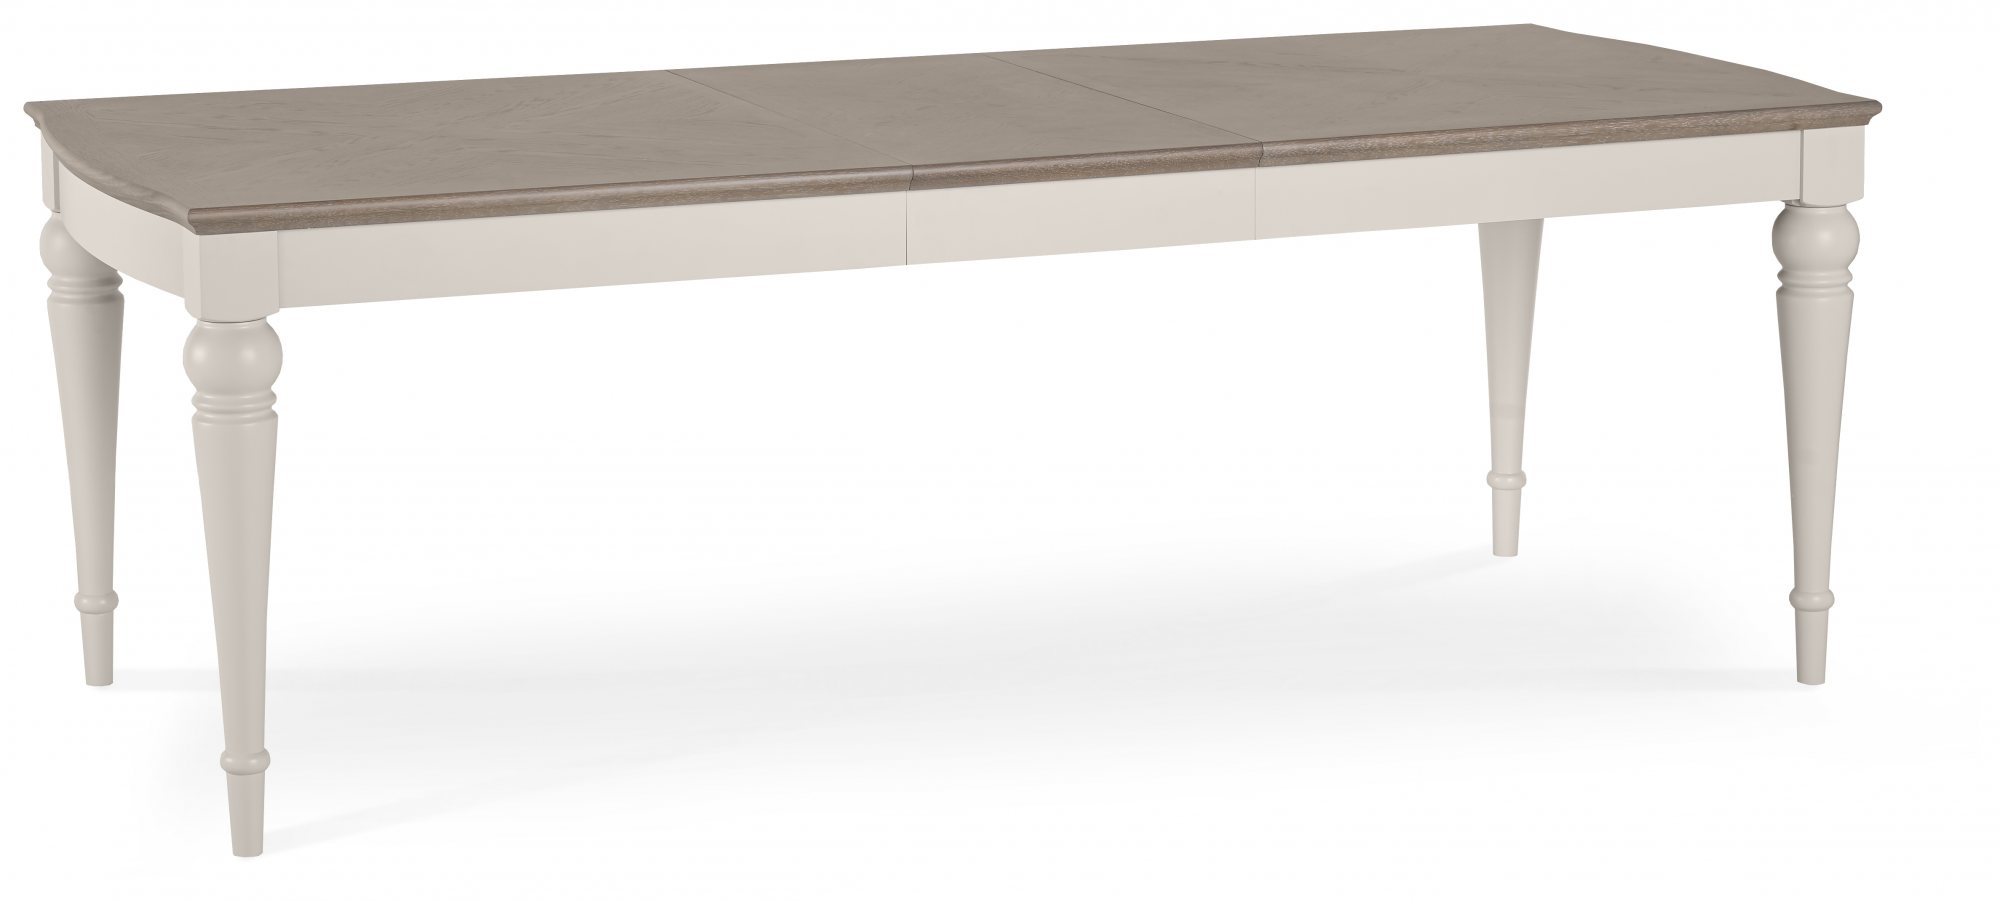 MONICA LARGE TABLE EXTENDED - L225cm x D95cm x H77cm